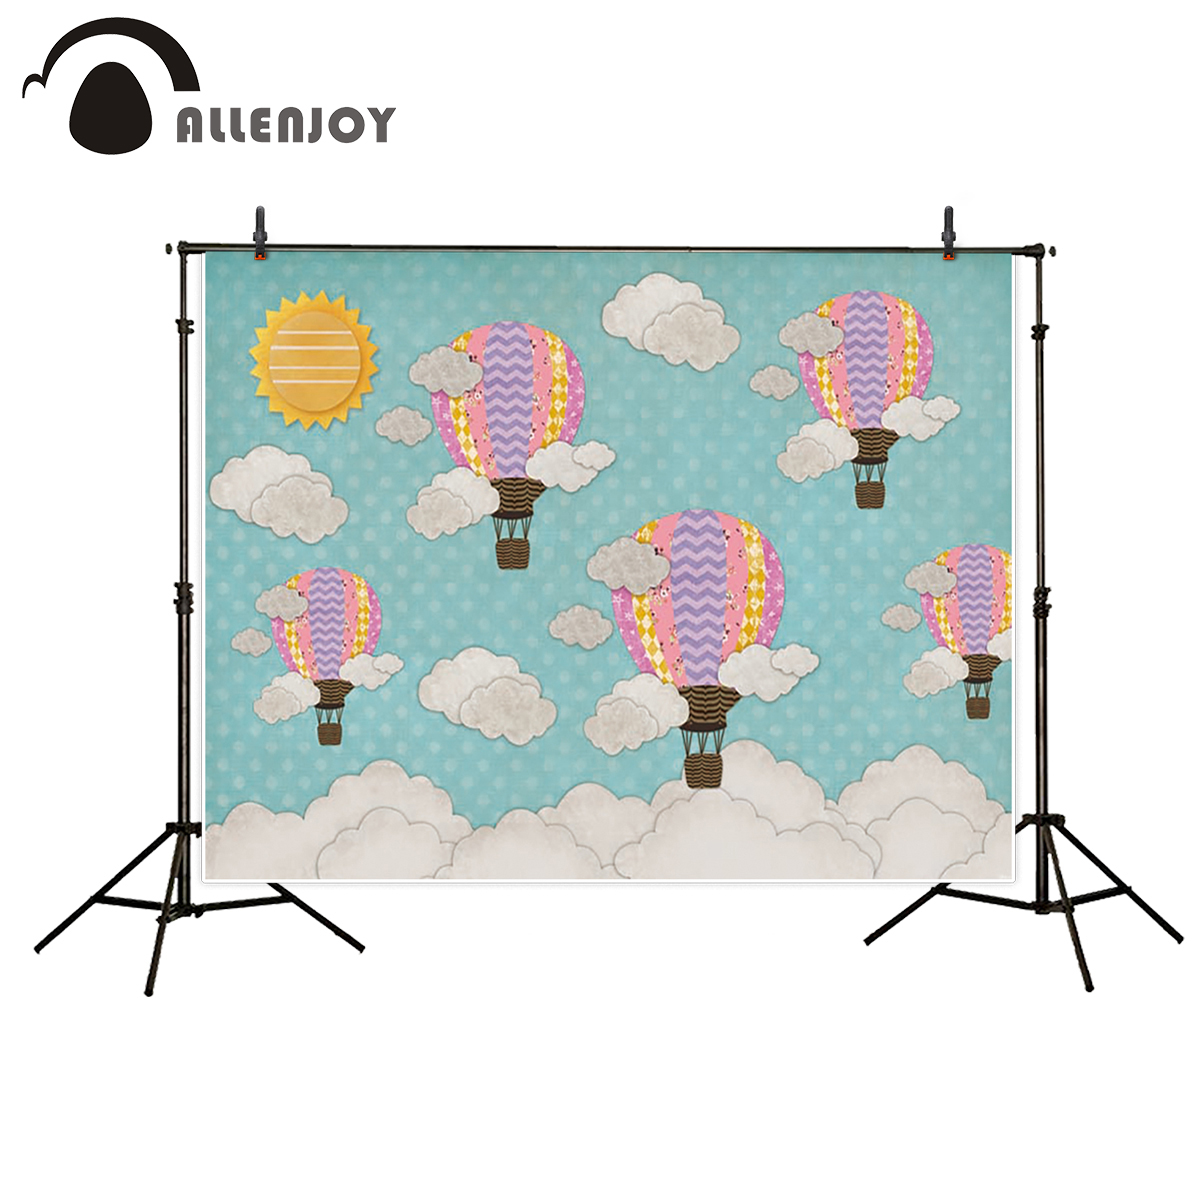 Allenjoy photography backdrop sun baby colorful hot air balloon cloud background newborn photobooth photo studio 300cm 200cm about 10ft 6 5ft fundo butterflies fluttering woods3d baby photography backdrop background lk 2024